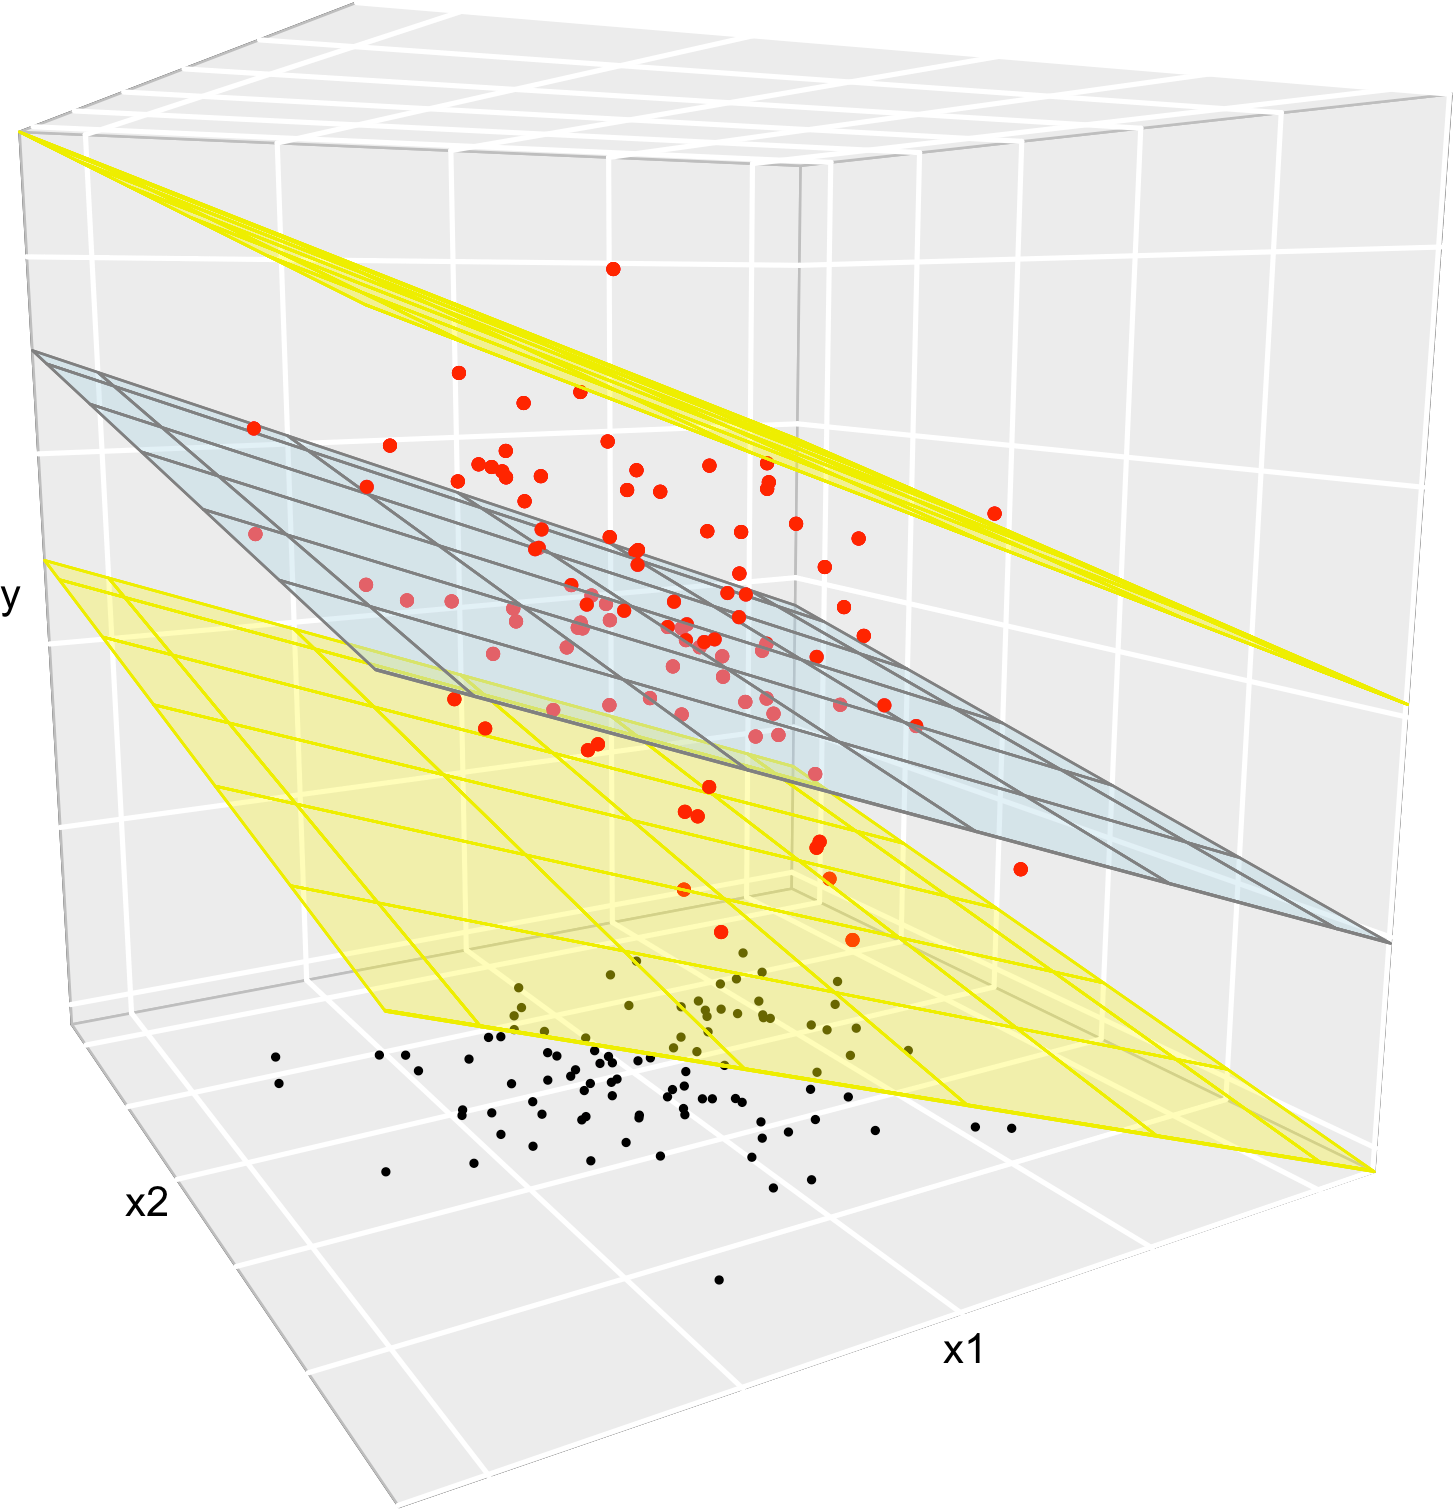 2 3 Assumptions of the model | Notes for Predictive Modeling